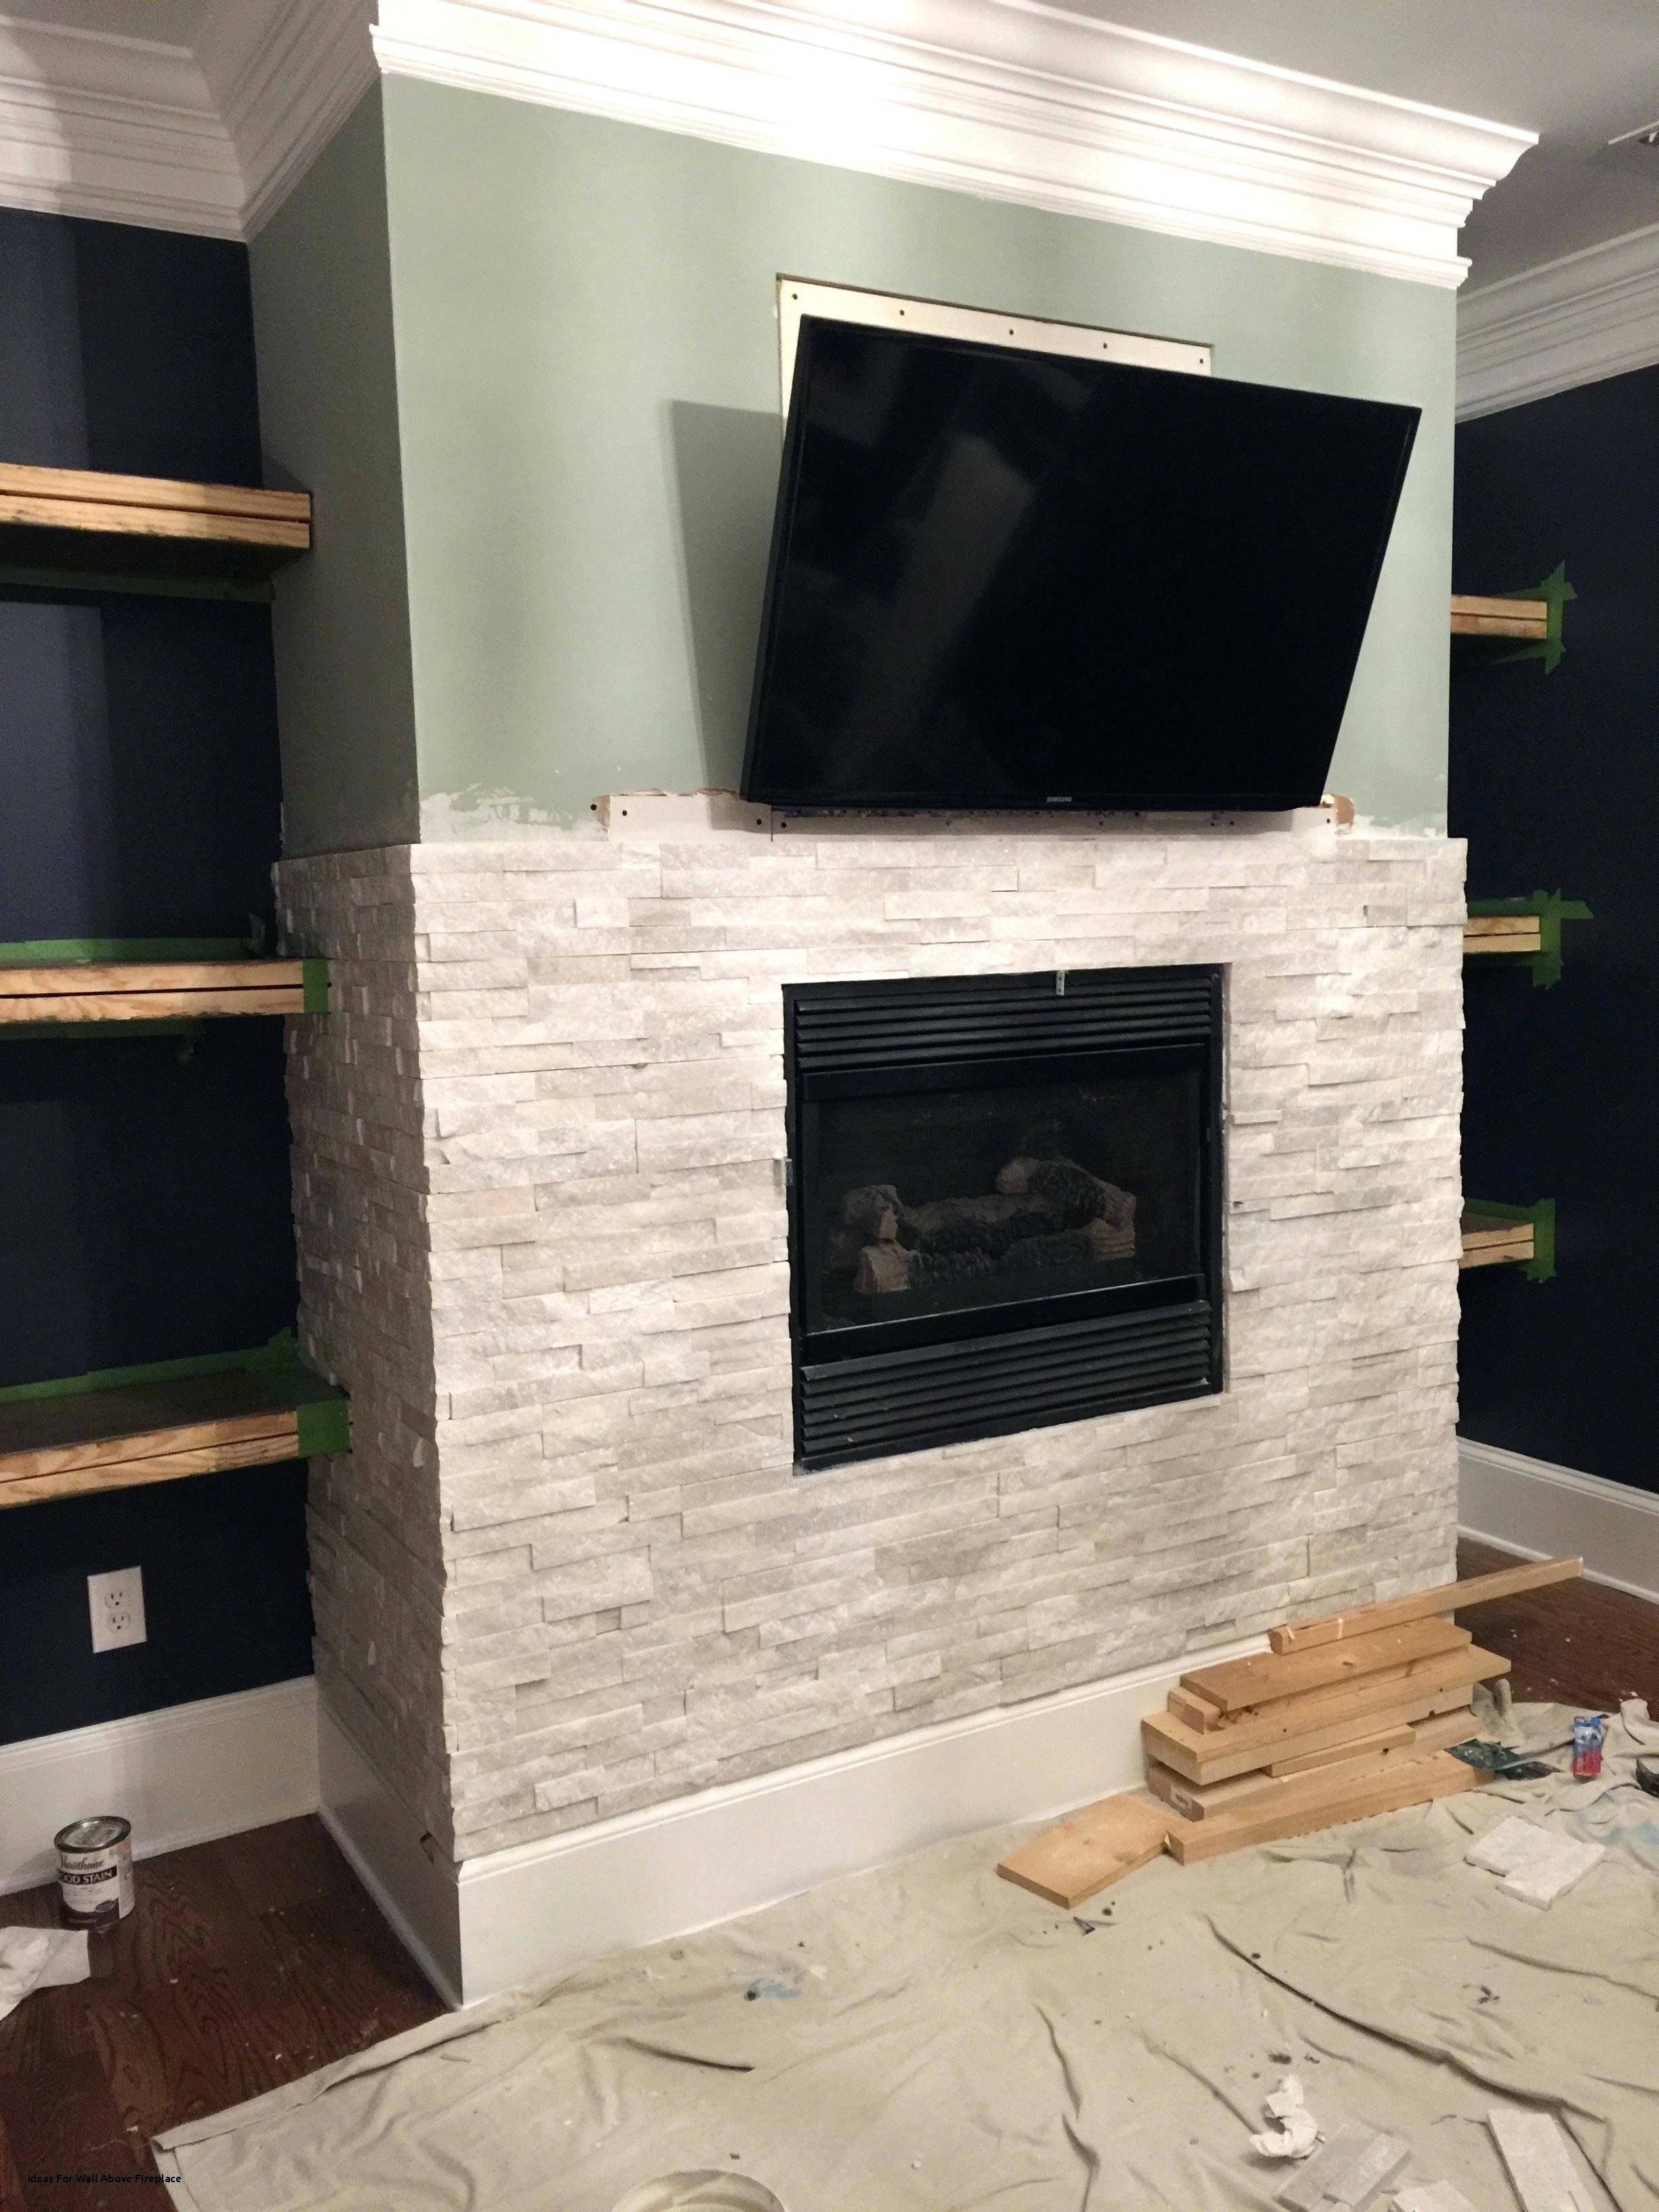 crown molding and tv over fireplace with stone fireplace ideas also shelves plus hardwood flooring for living room renovation ideas ledgestone veneer fireplace fieldstone fireplace cost fireplace mant